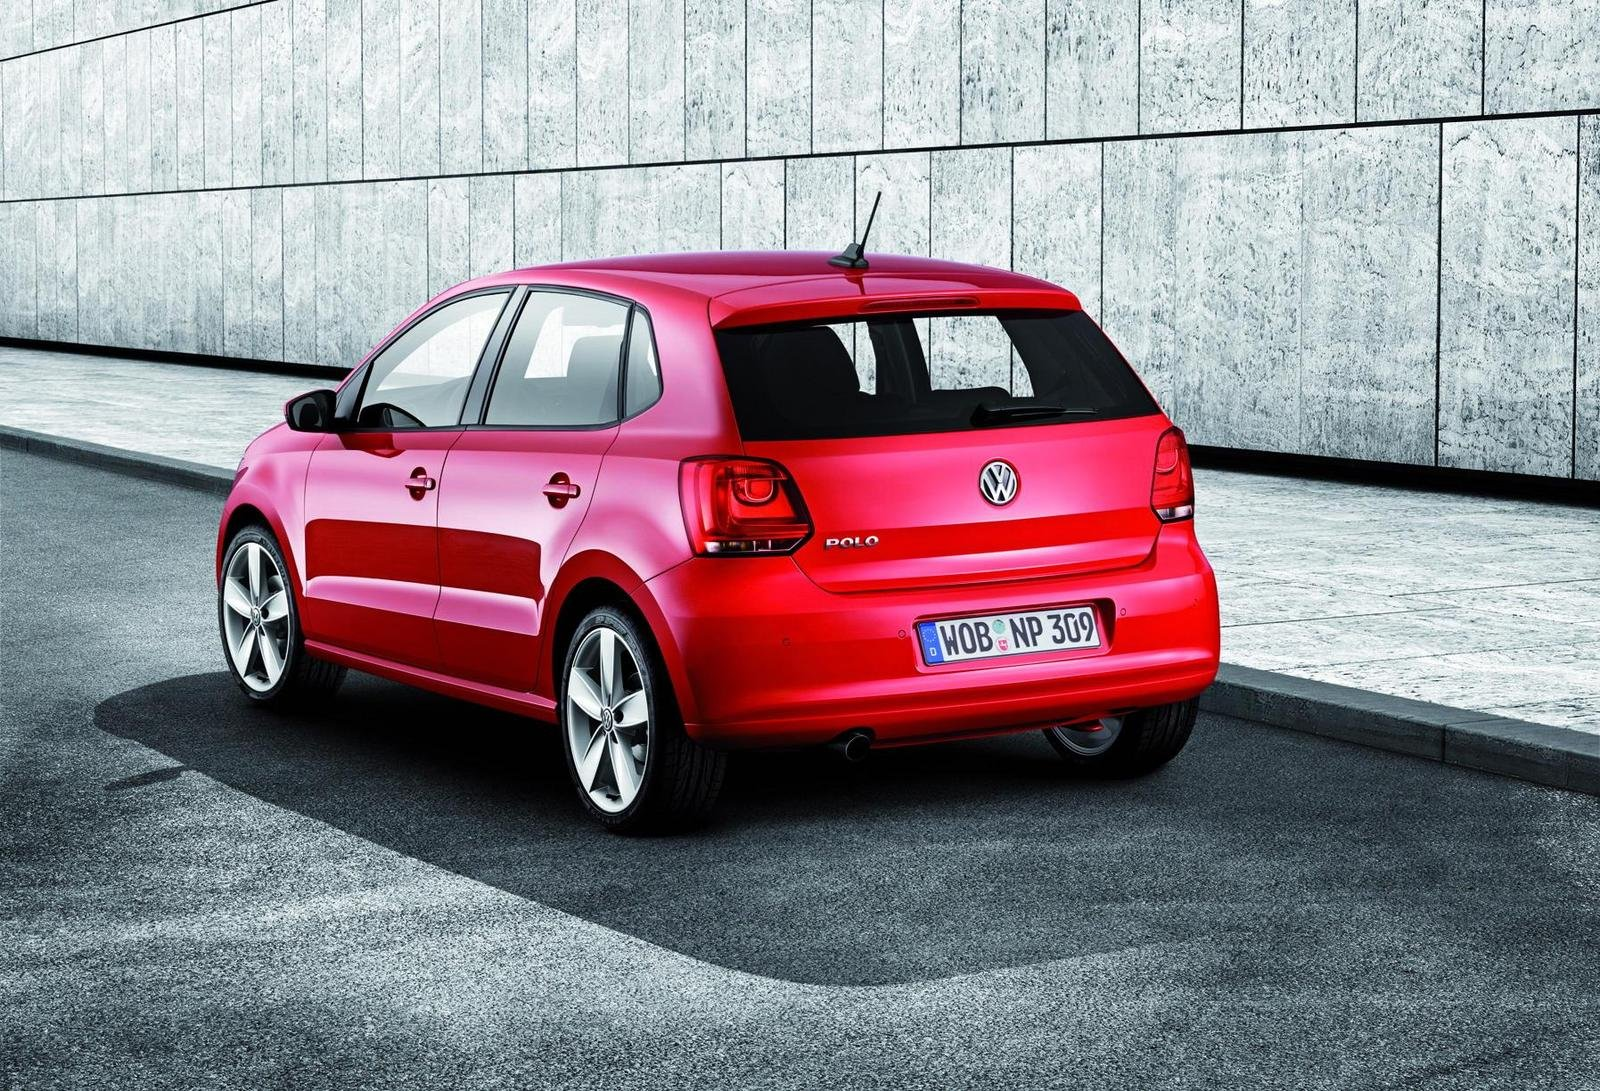 car au 2010 volkswagen polo cars wallpapers and photos. Black Bedroom Furniture Sets. Home Design Ideas